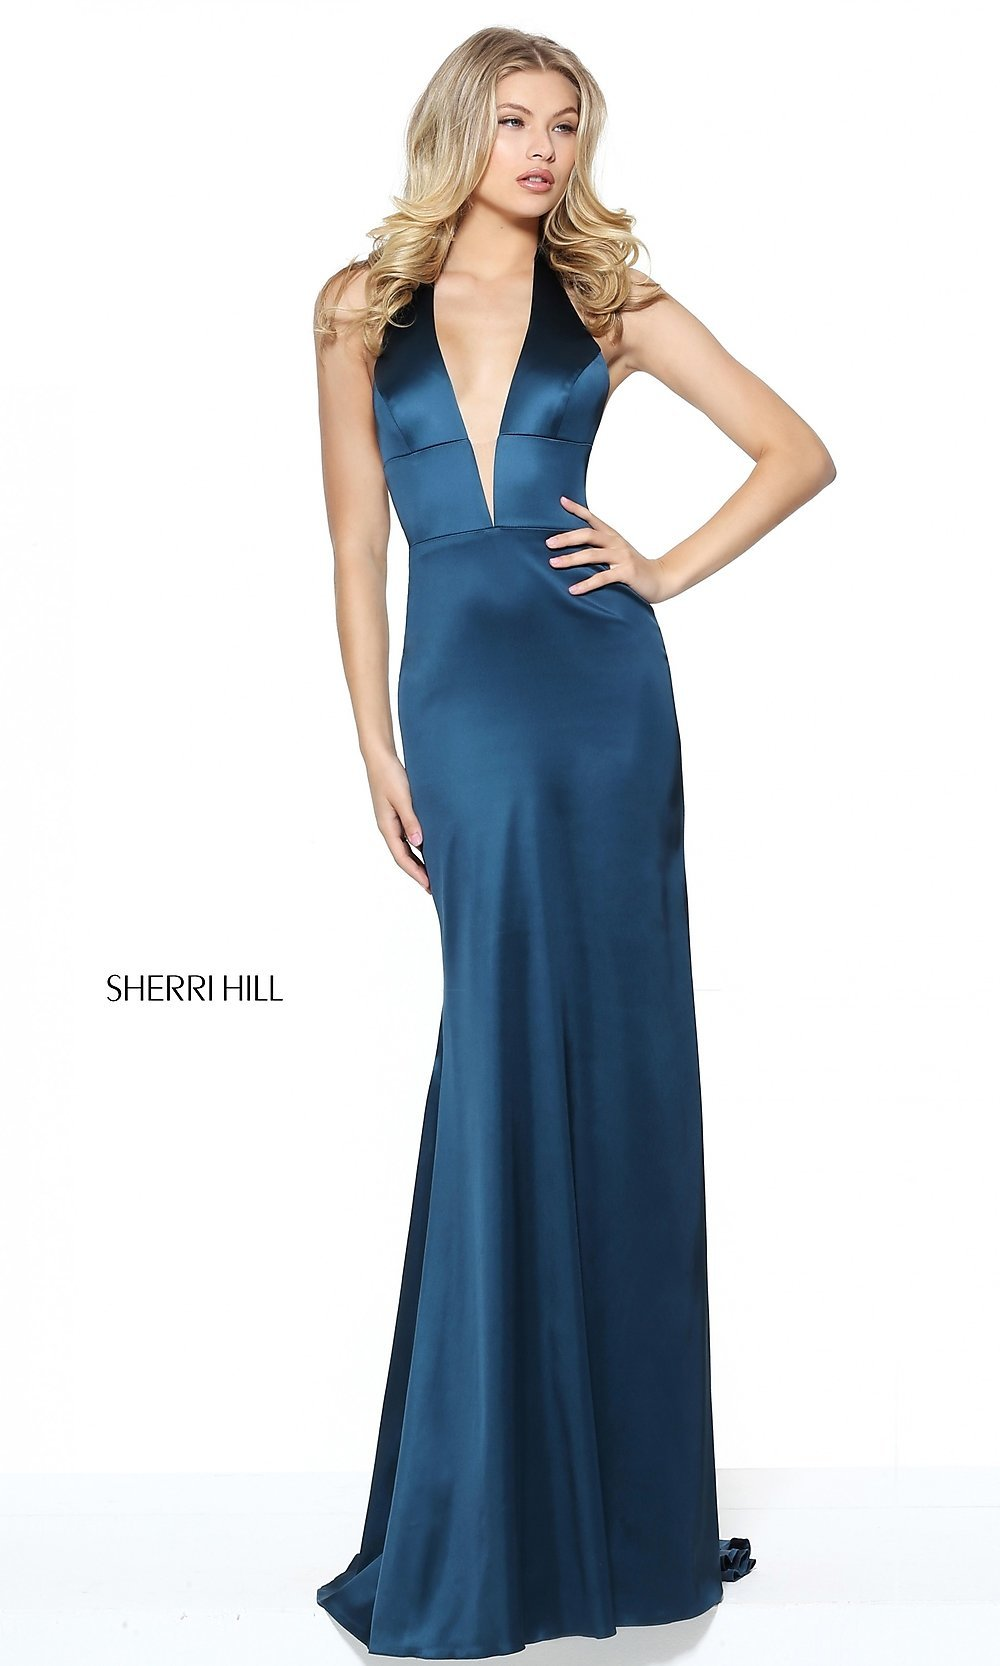 Sherri Hill Halter Prom Dress with VNeck  PromGirl